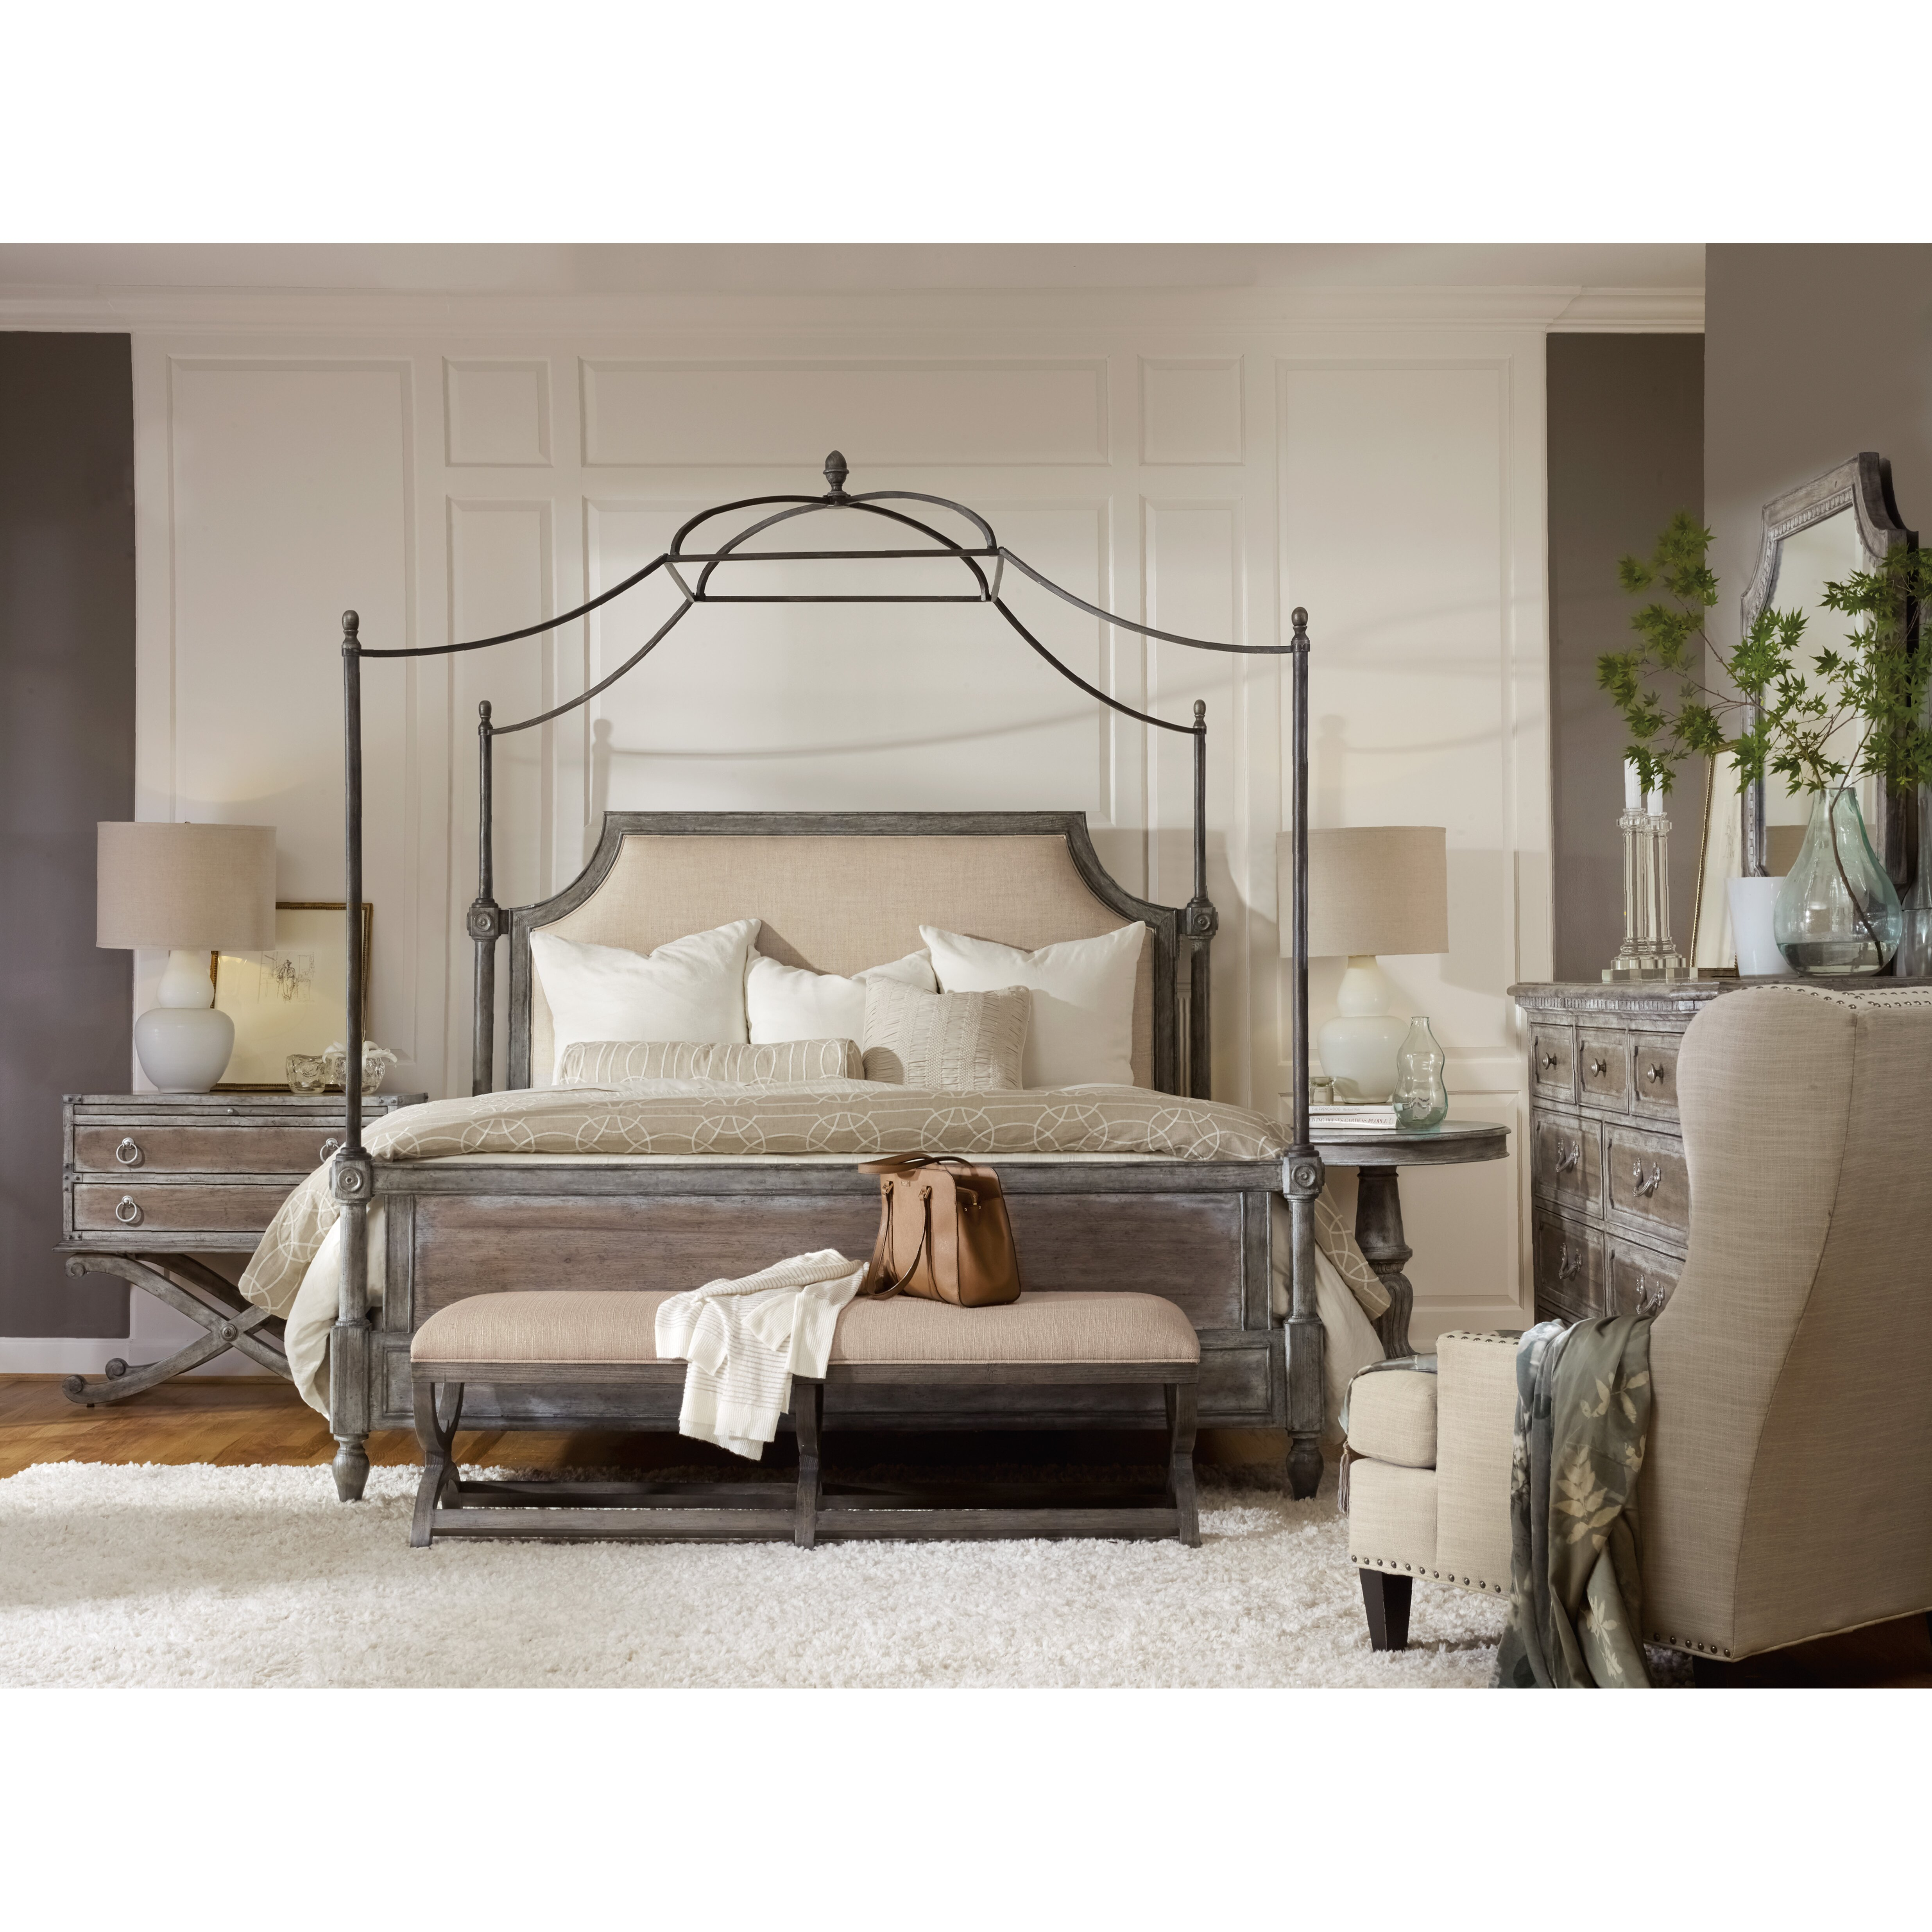 Hooker Furniture True Vintage Canopy Customizable Bedroom